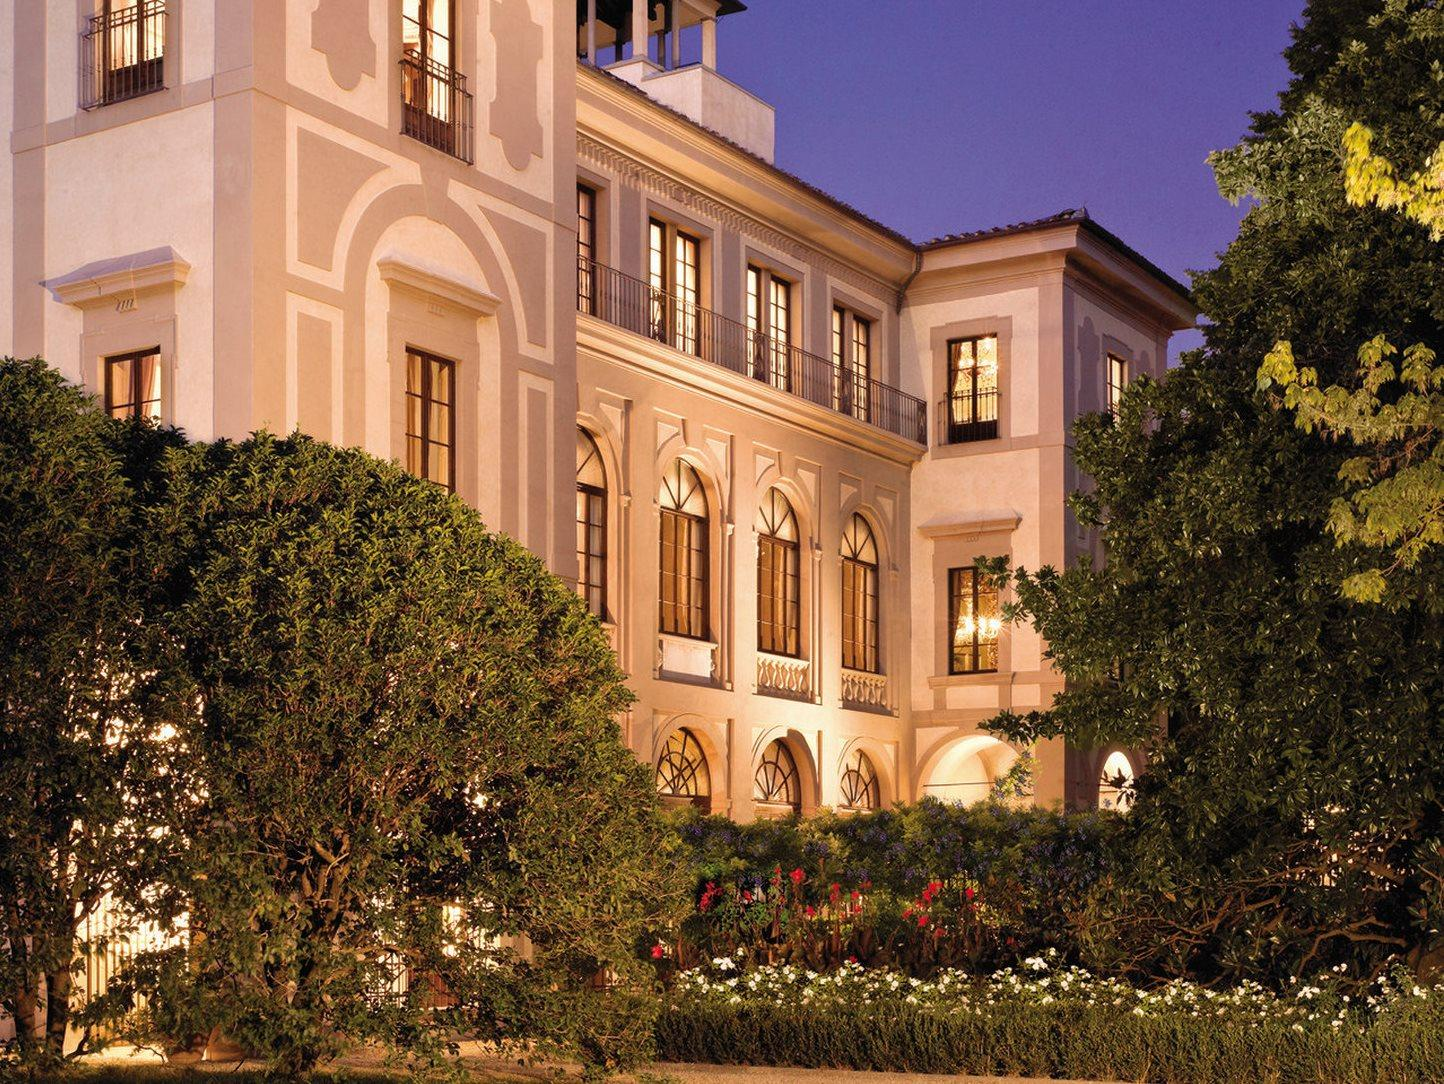 Albergo Firenze Florence Italy Four Seasons Hotel Firenze Florence From 846 Save On Agoda